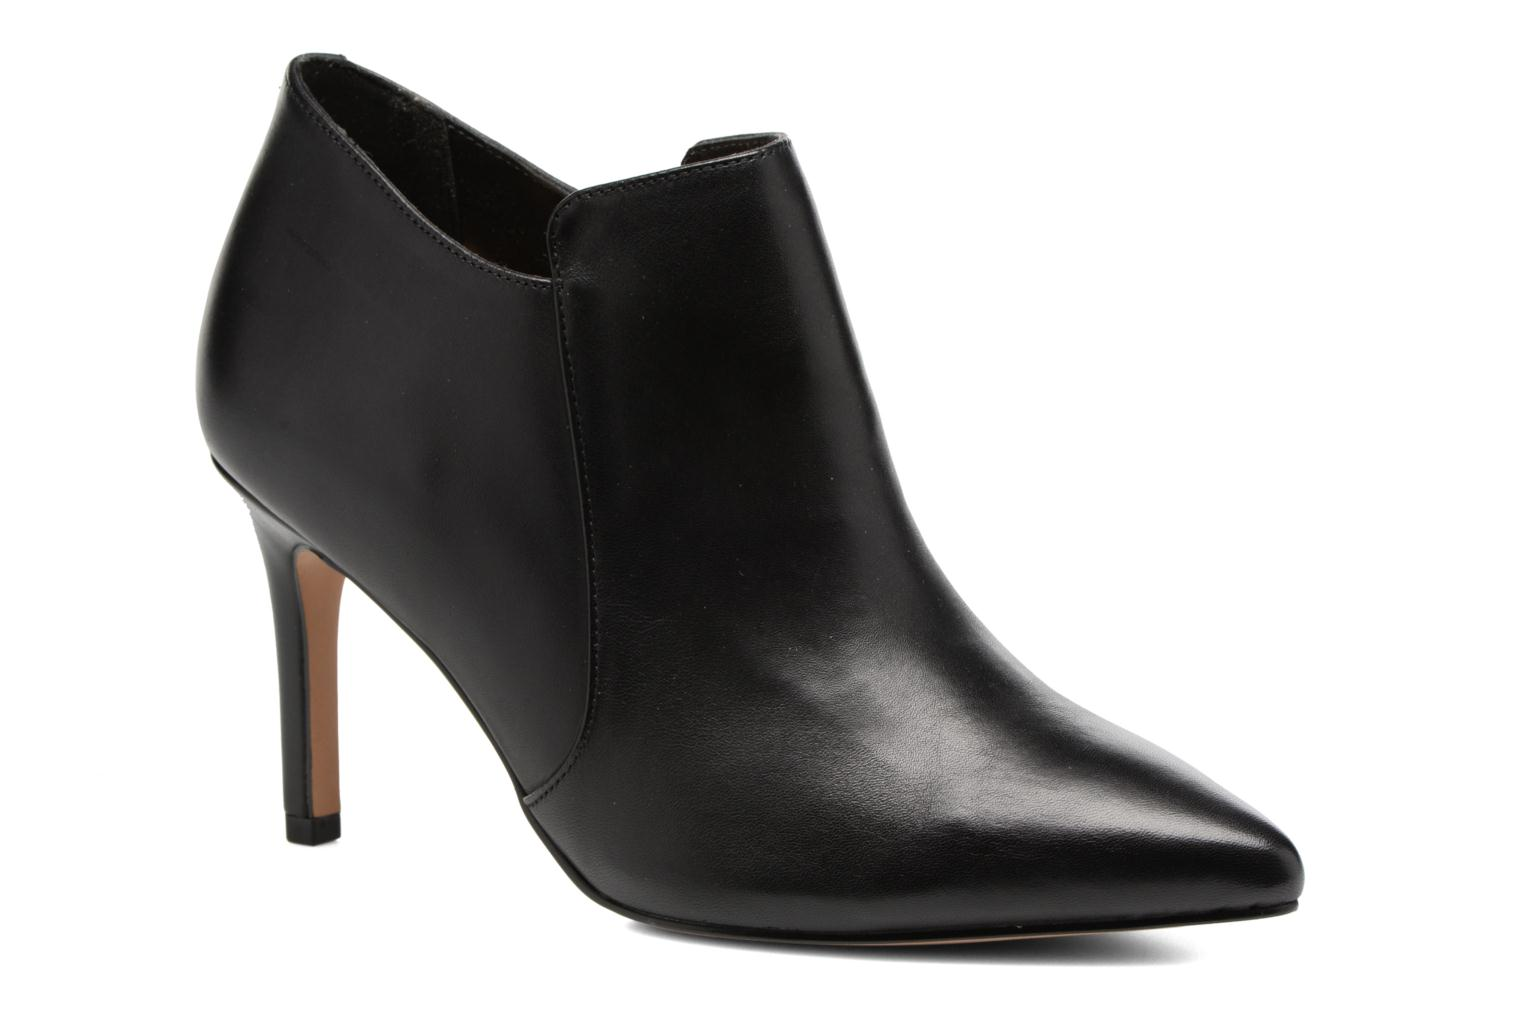 Marques Chaussure femme Clarks femme Dinah Spice Black leather